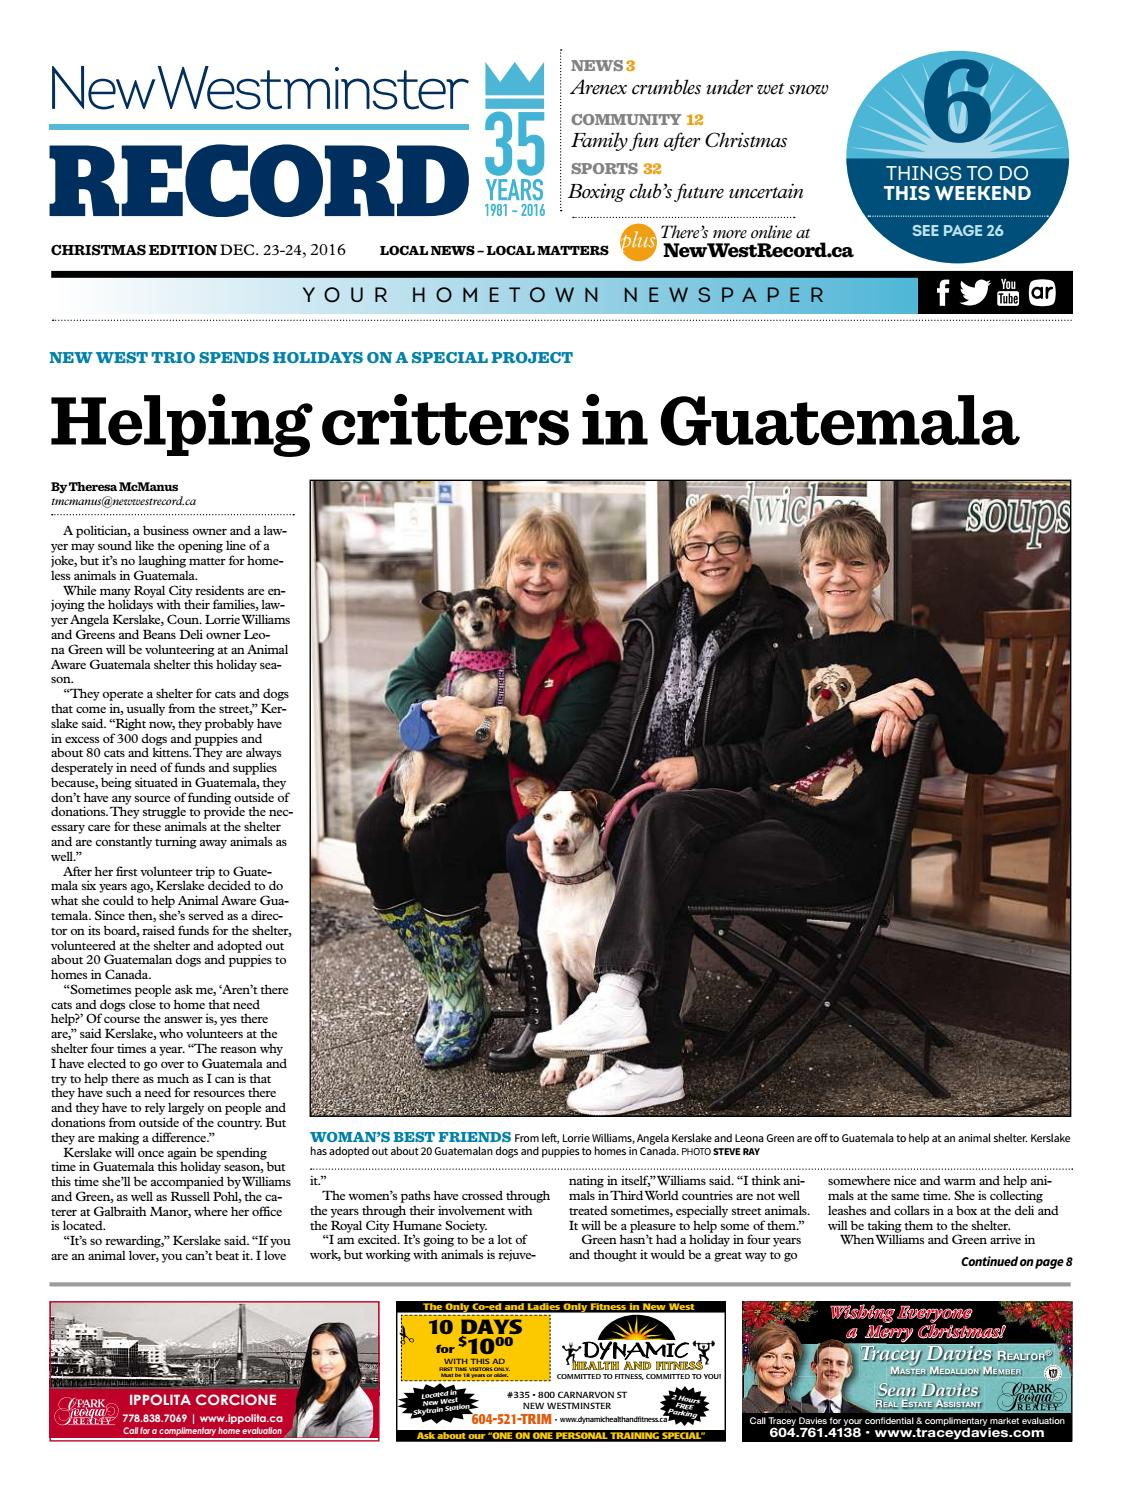 New Westminster Record December 22 2016 By Royal City Record Issuu